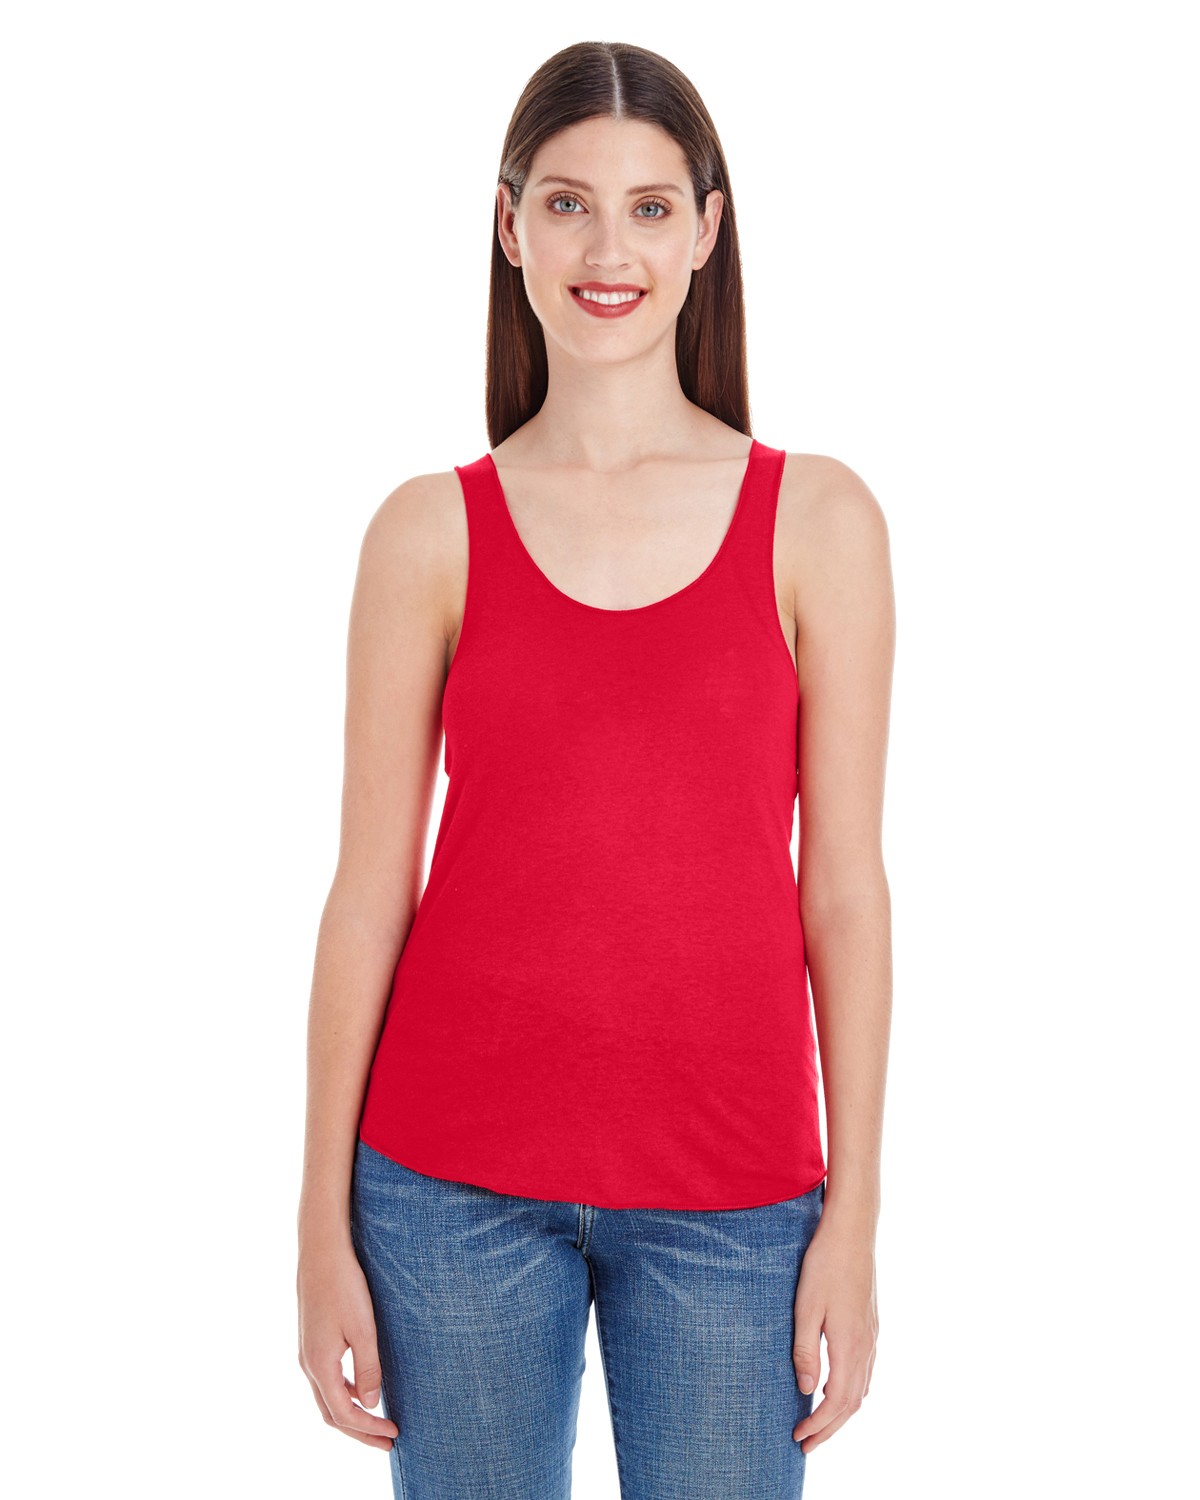 BB308W American Apparel RED